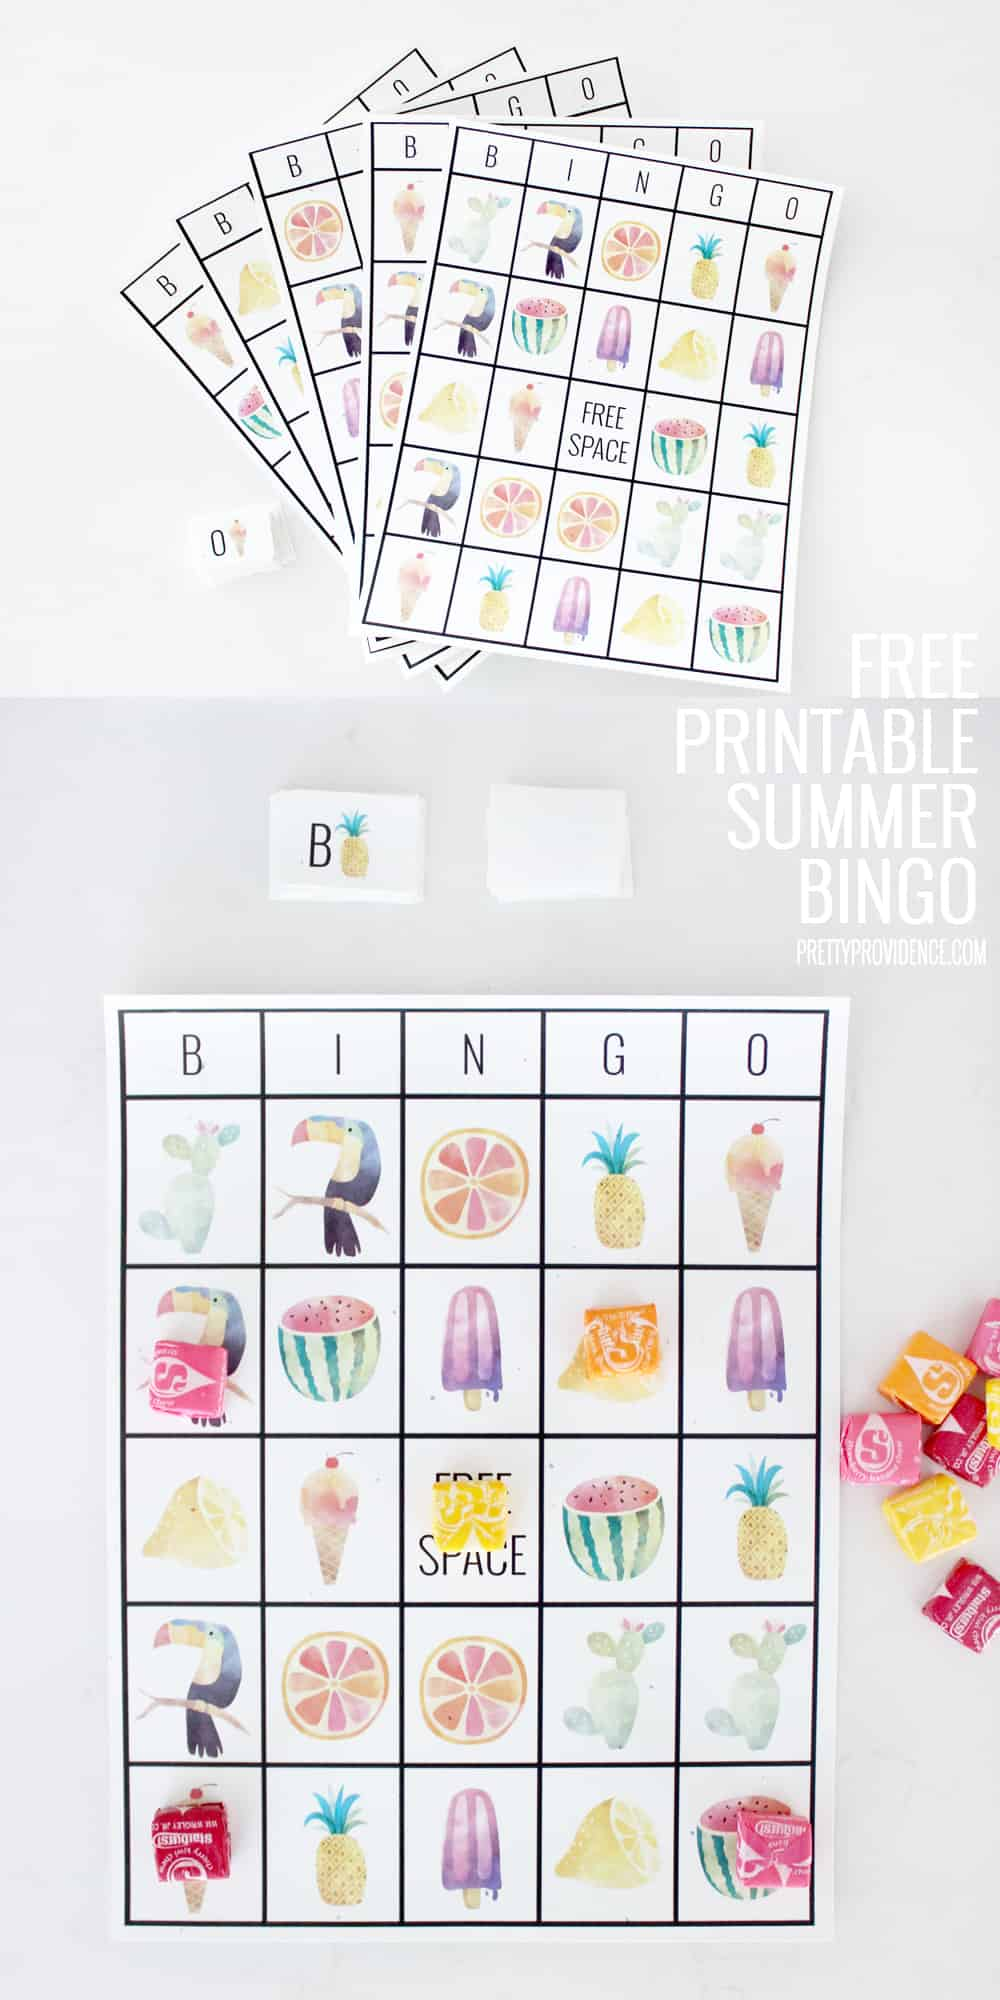 Fun free printable summer bingo sheets! Perfect activity to keep those little ones happy and busy, or for end of year class parties!